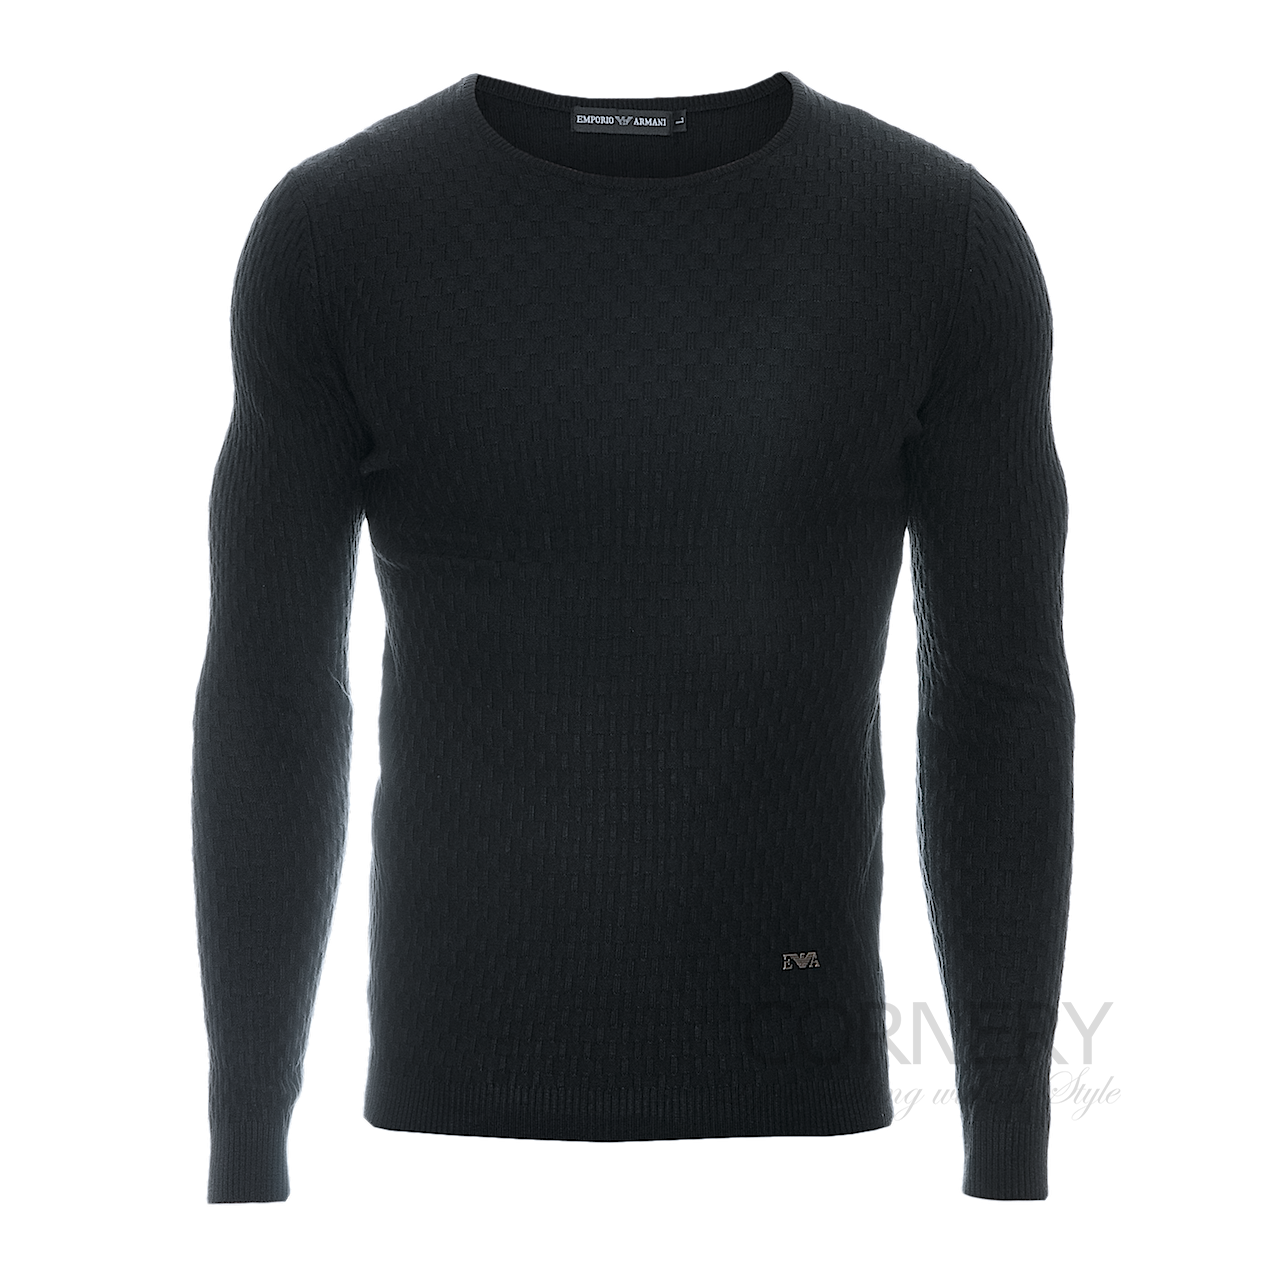 Свитера EA Sweater Black